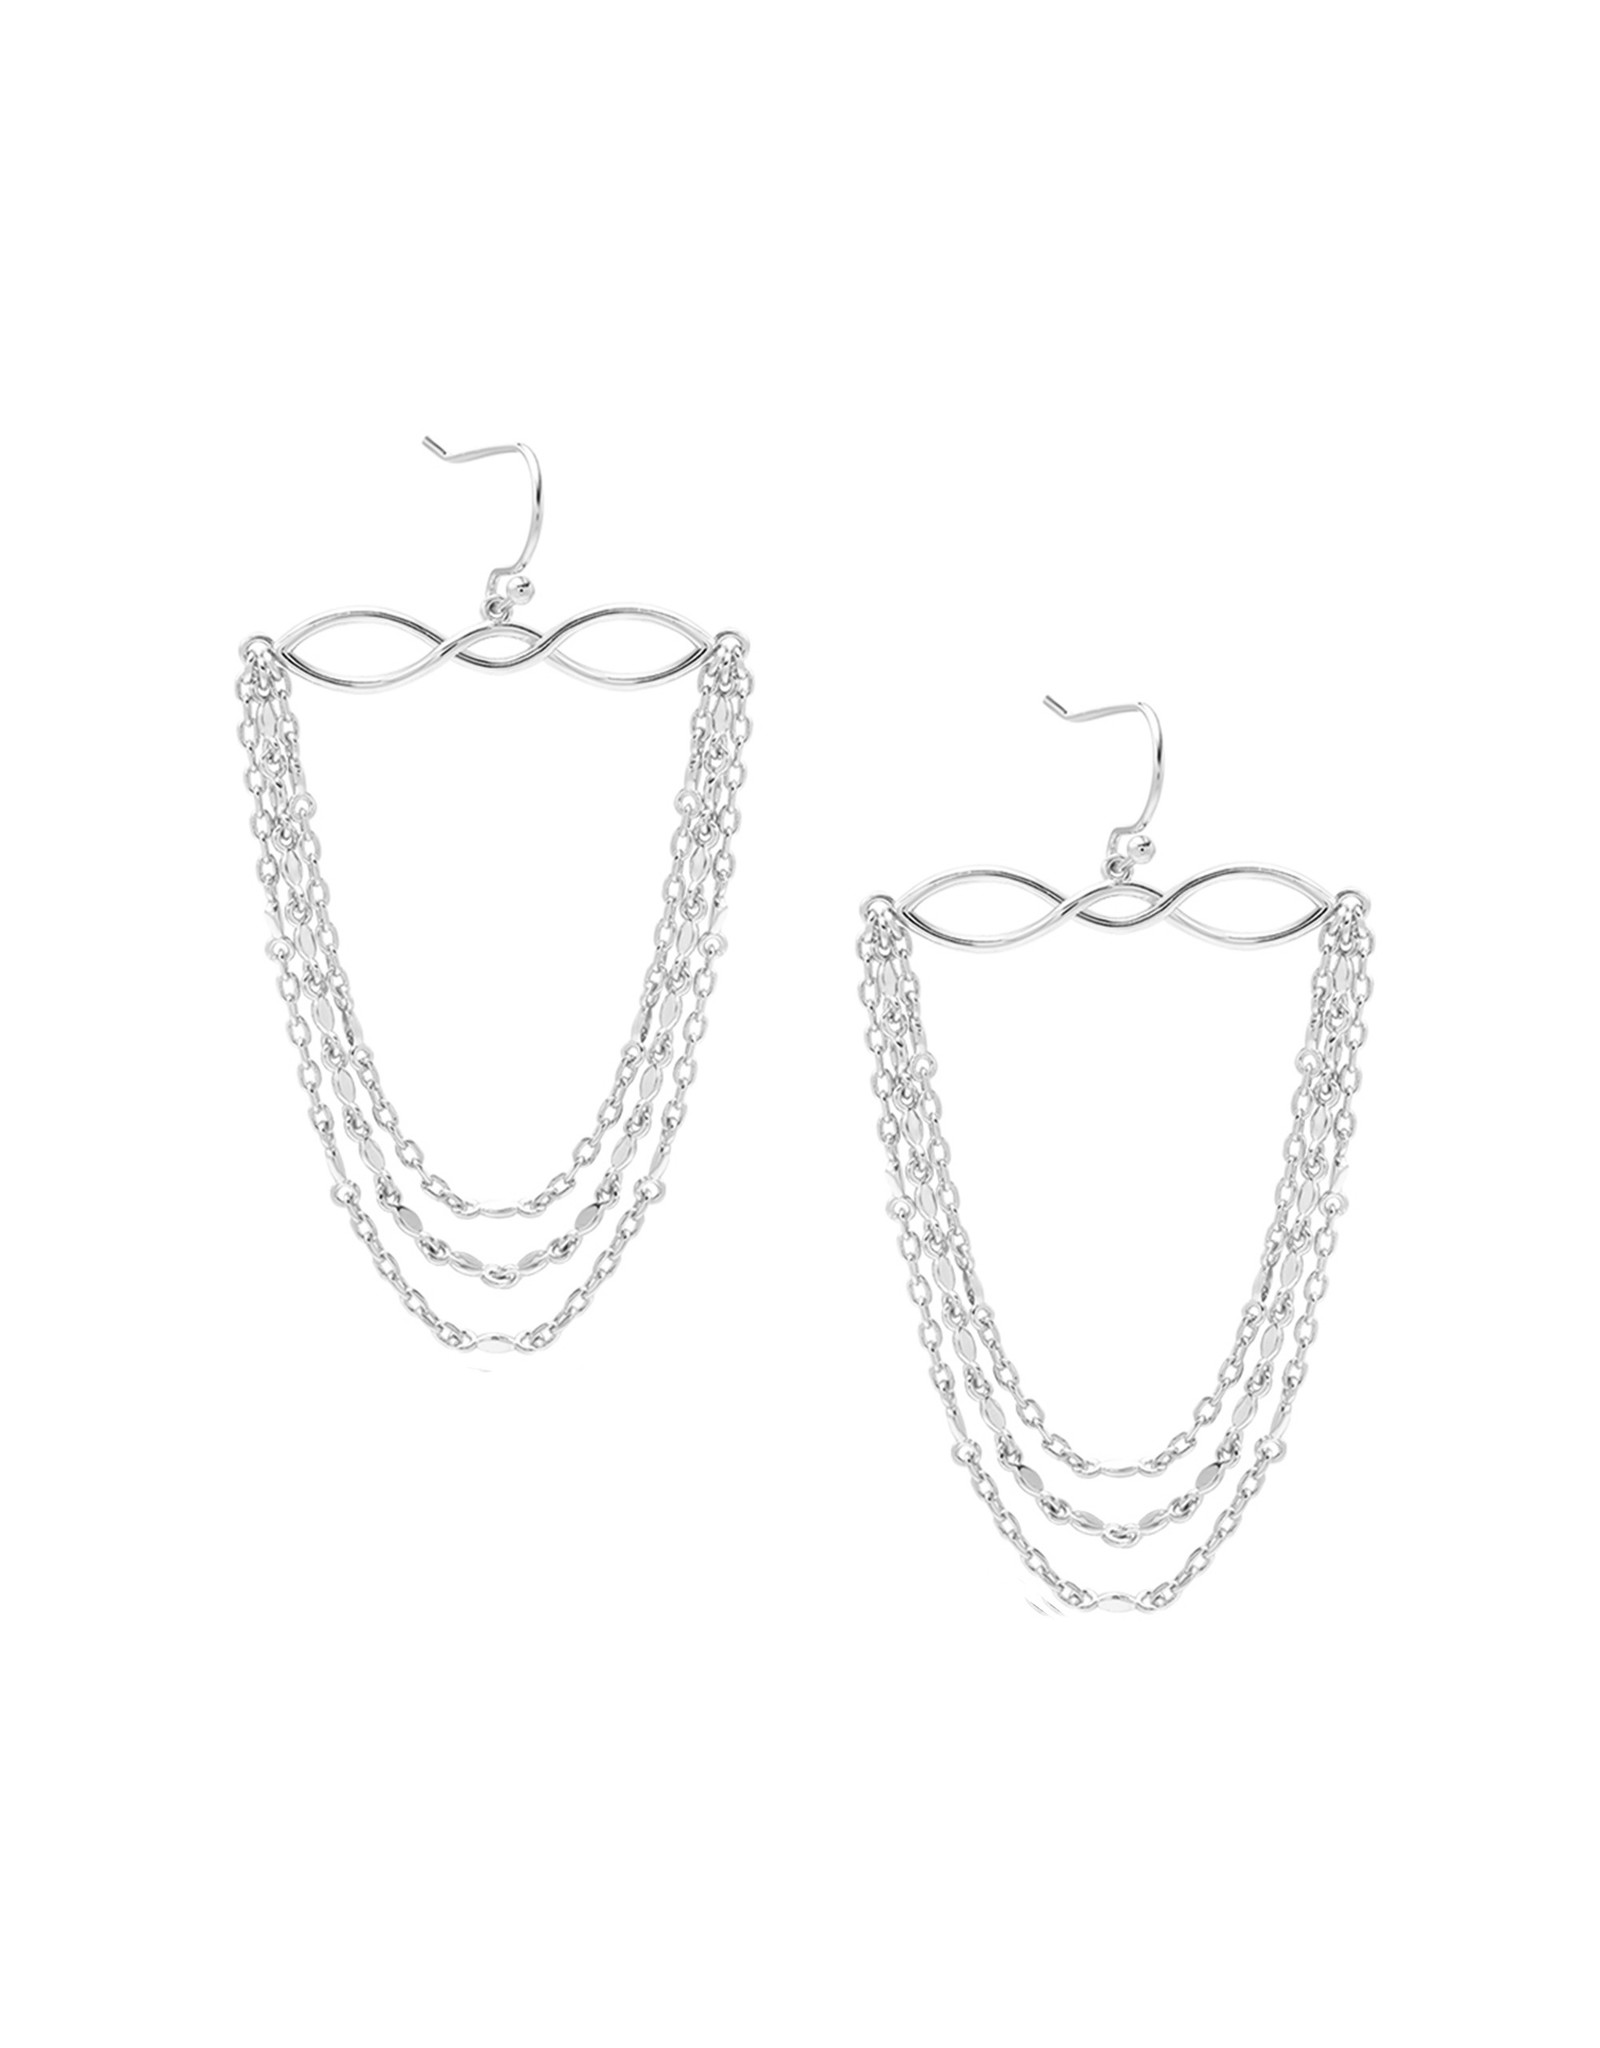 Natalie Wood Designs Blossom Earrings - Silver